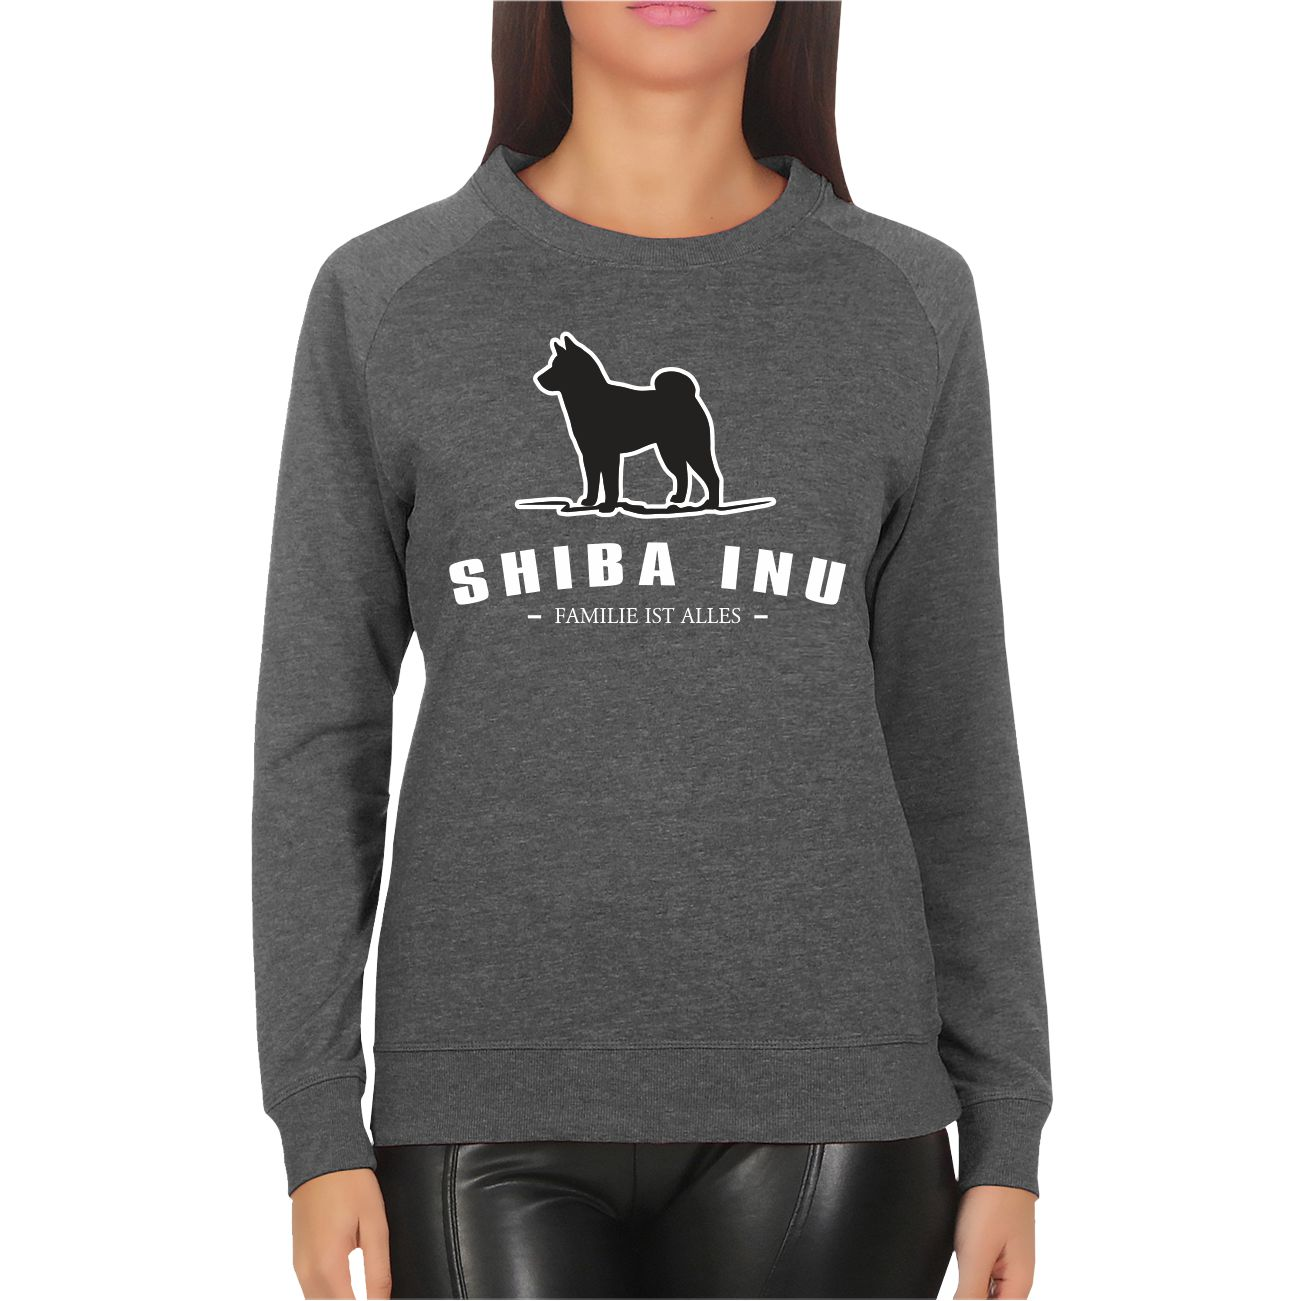 frauen sweatshirt shiba inu familie ist alles. Black Bedroom Furniture Sets. Home Design Ideas